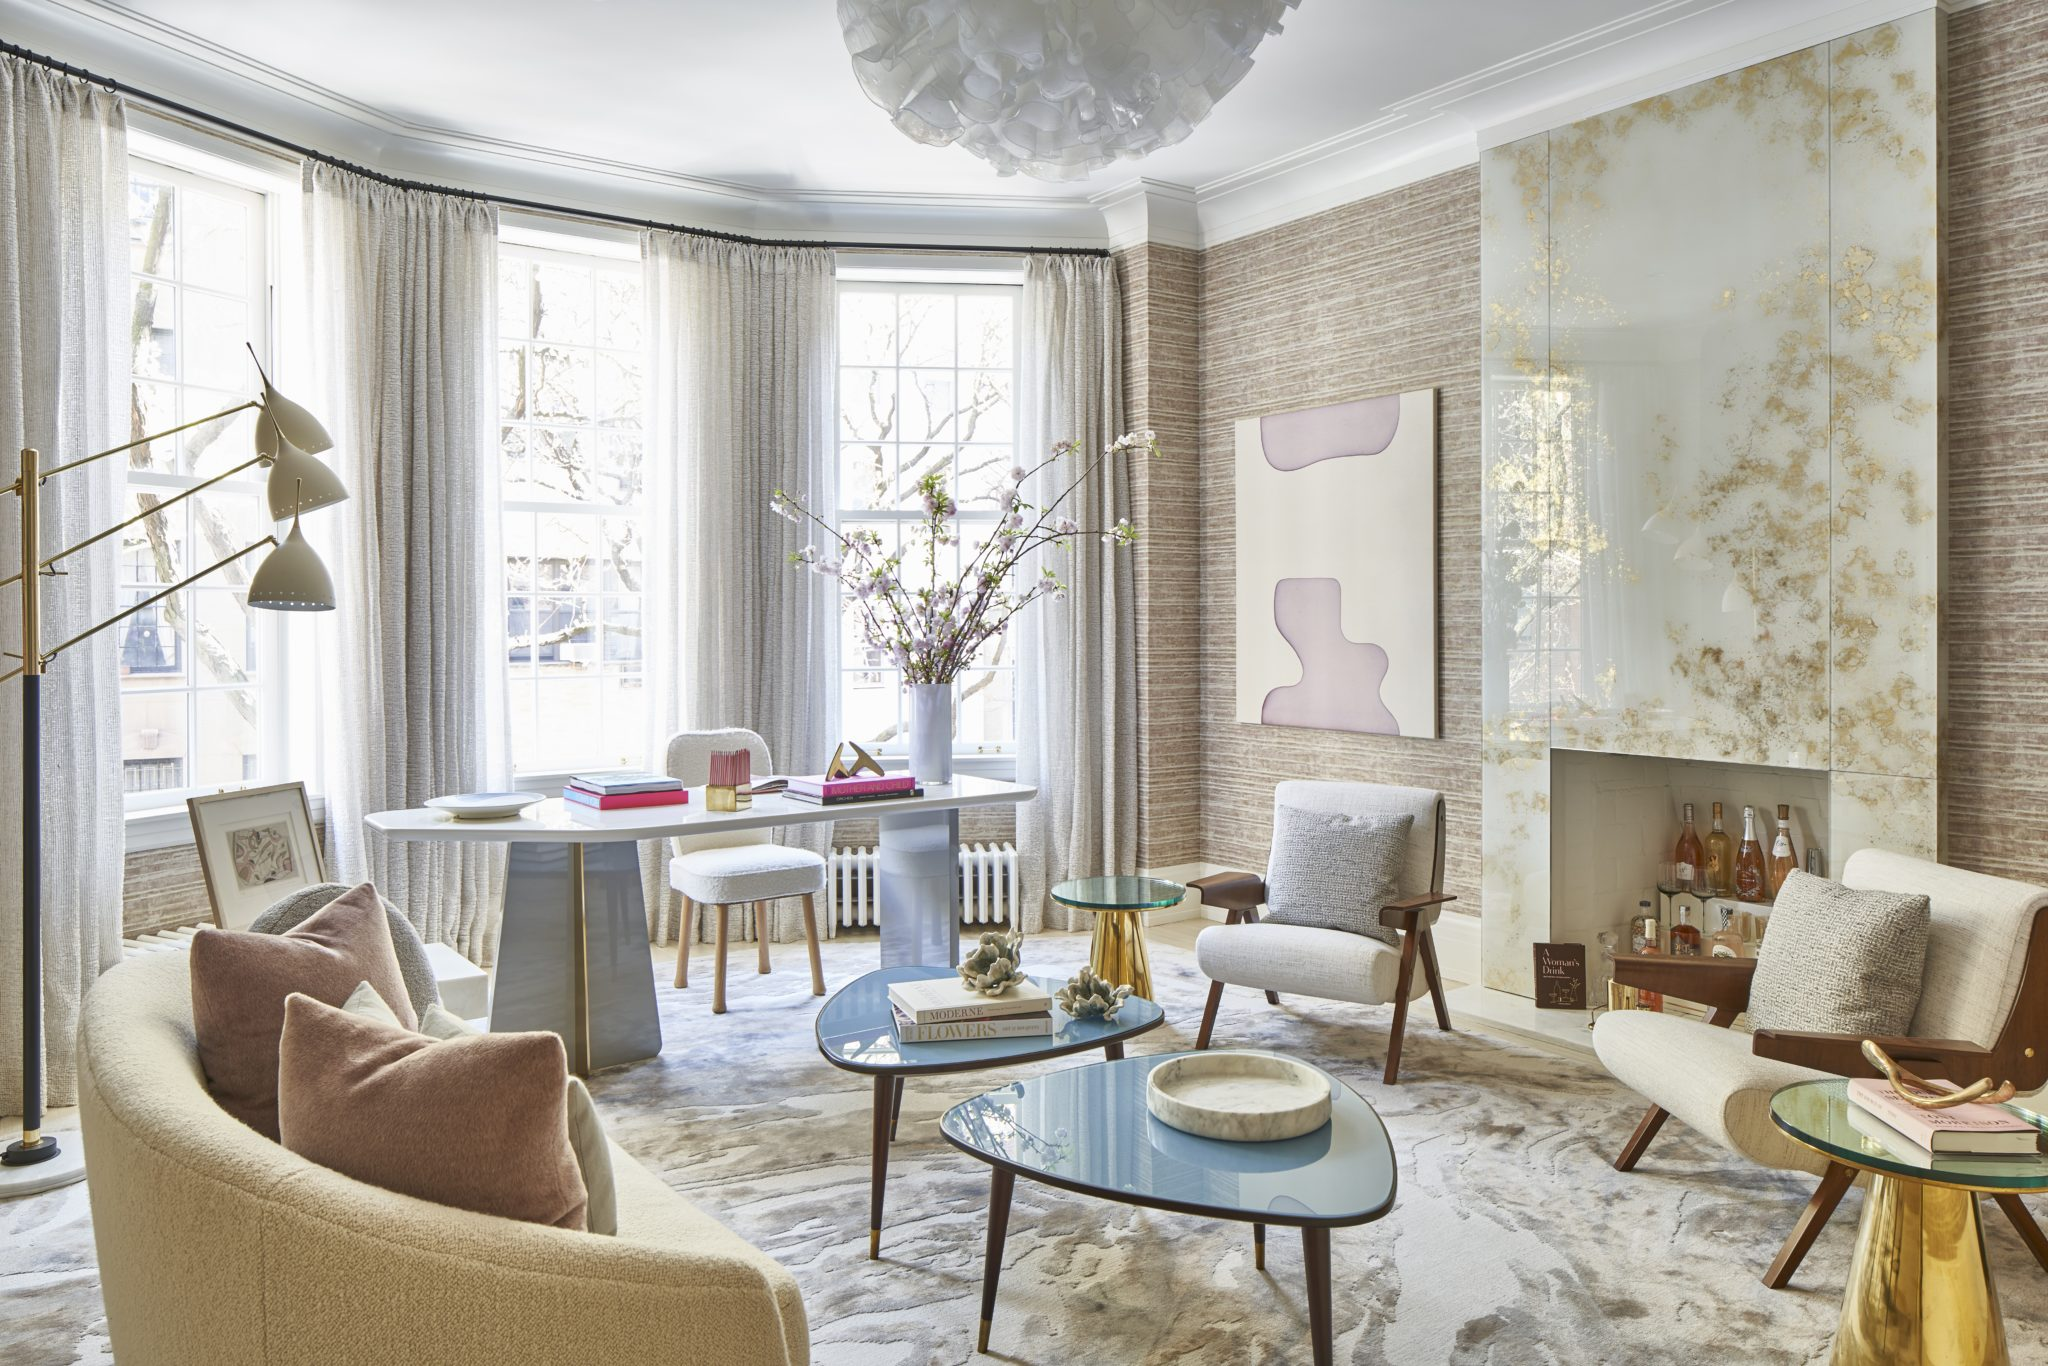 Focusing on femininity,Eve Robinson Associatesdesigned a room perfect for a woman's various roles and includes areas for work, entertaining, and private reflection.